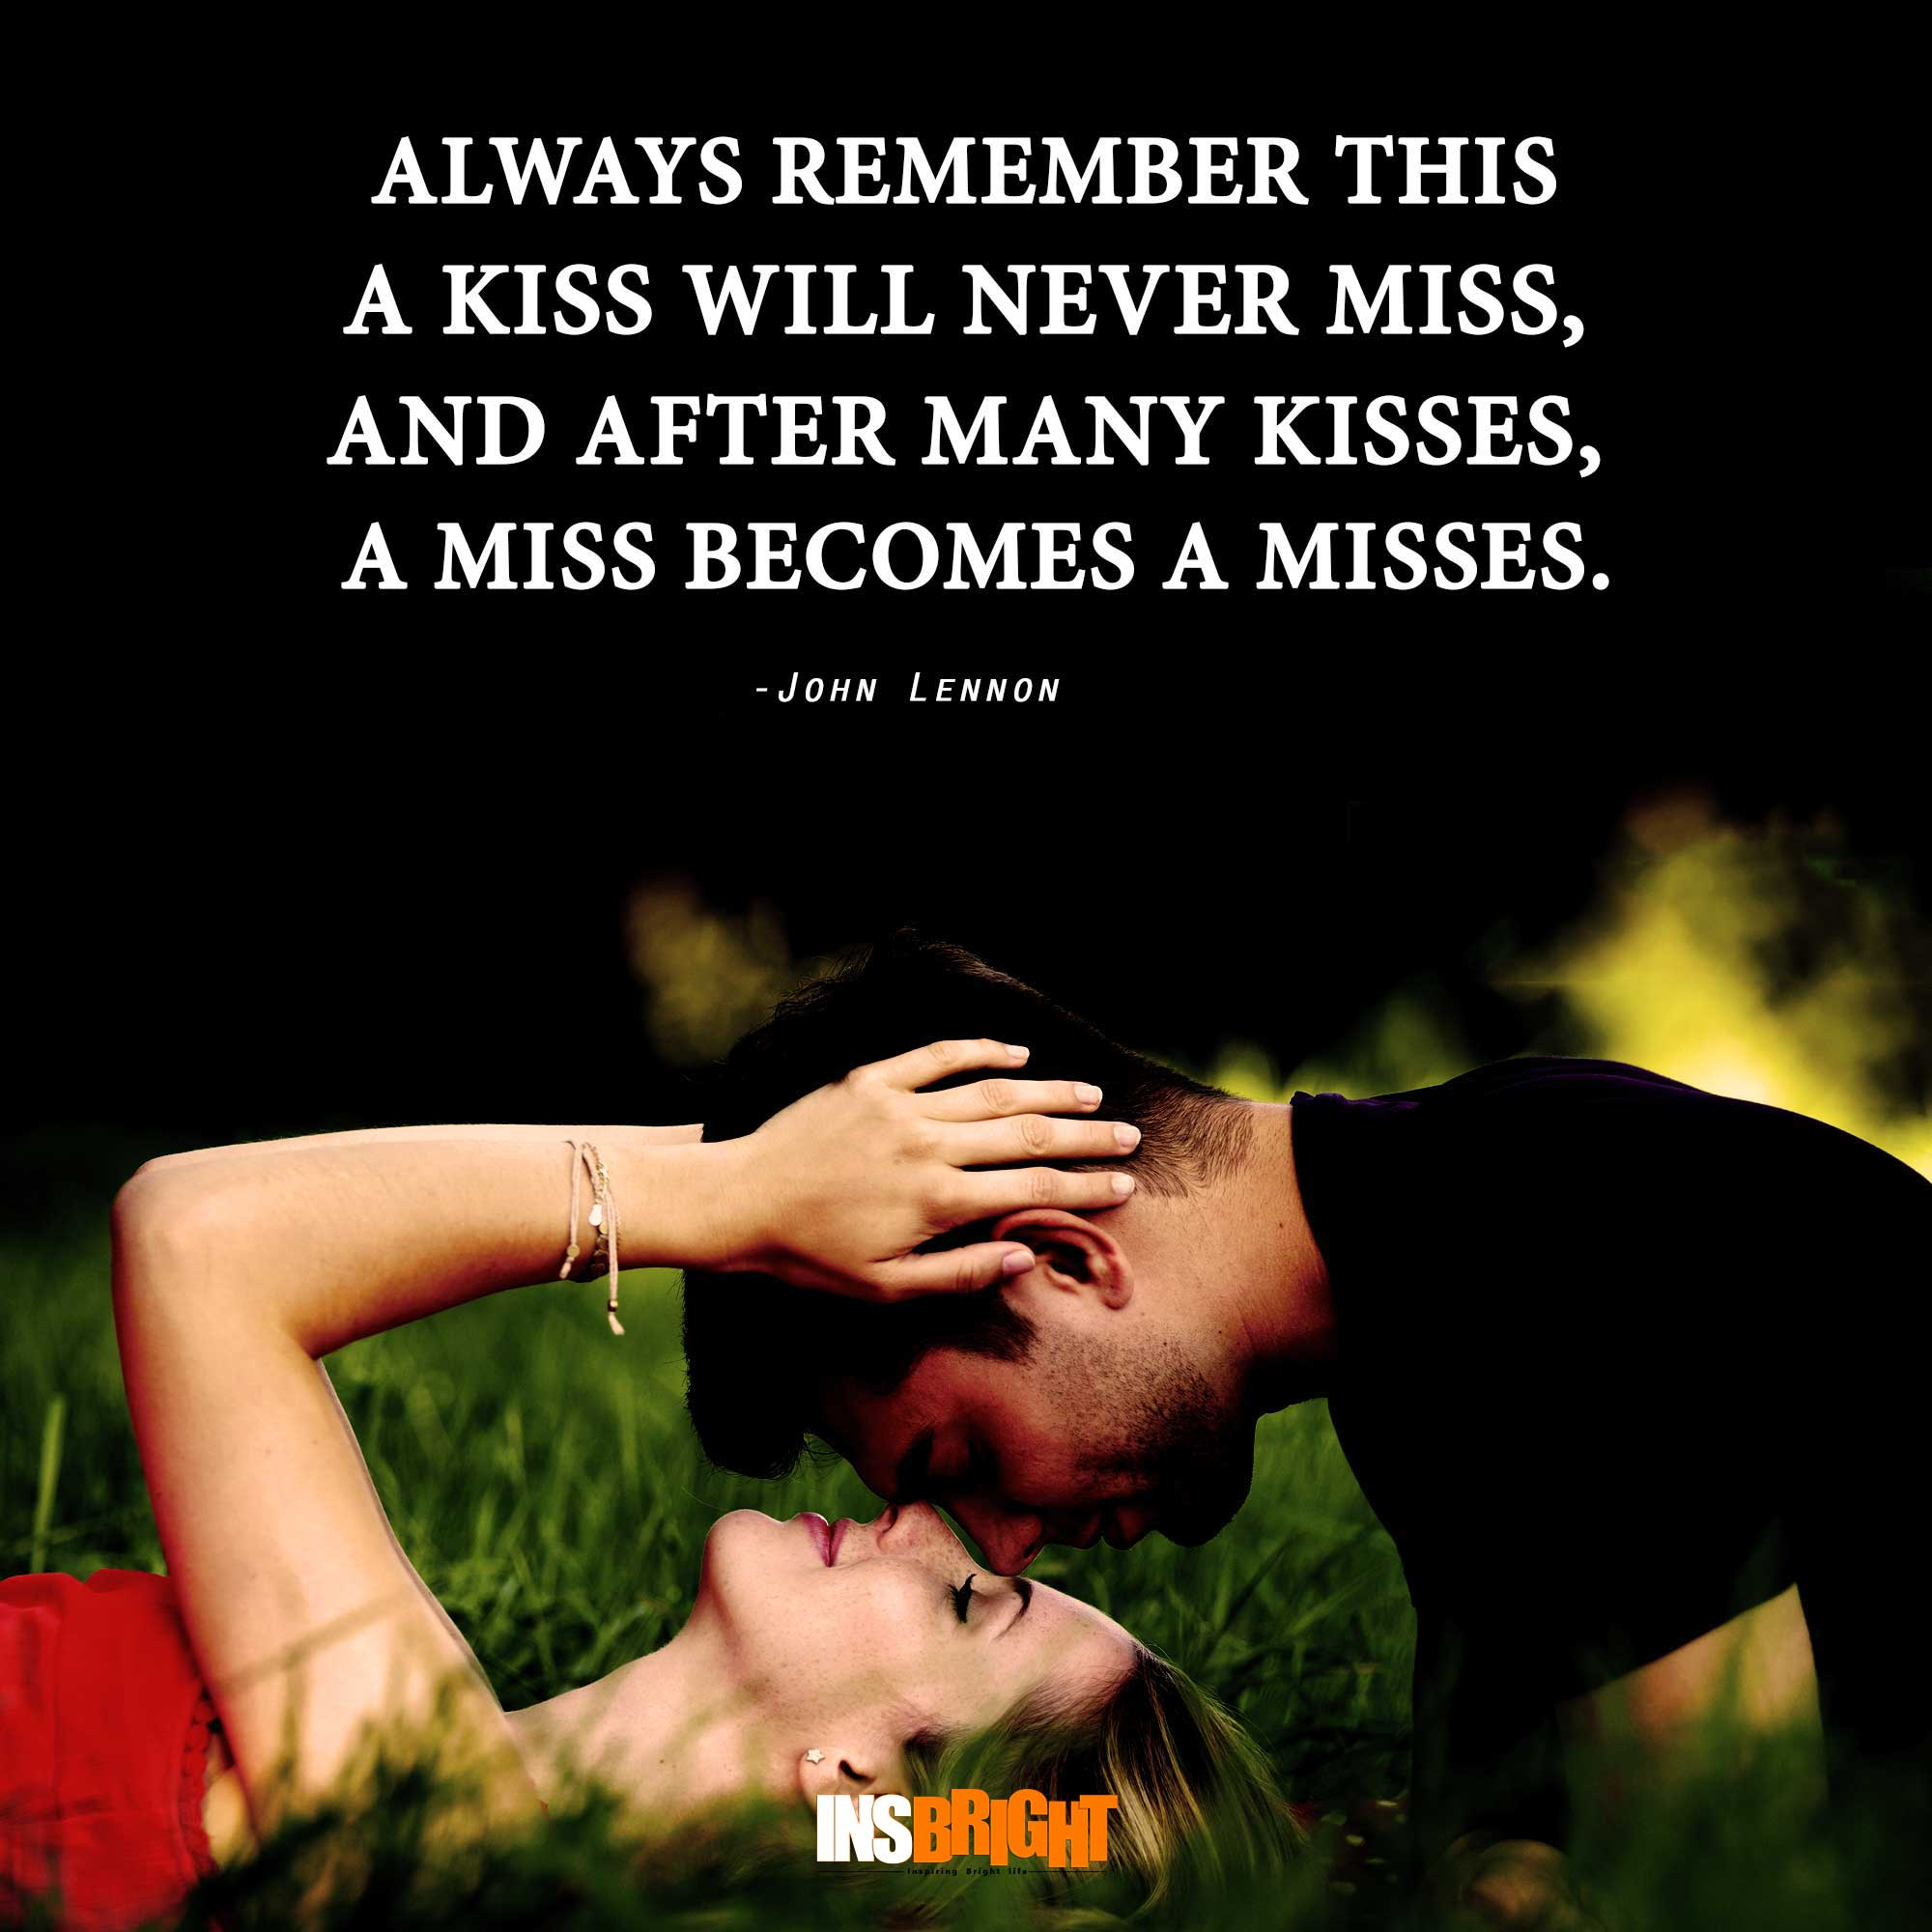 Romantic Love Quotes For Her From Him 45 Romantic Love Kiss Quotes For Him Or Her  Kissing Images With